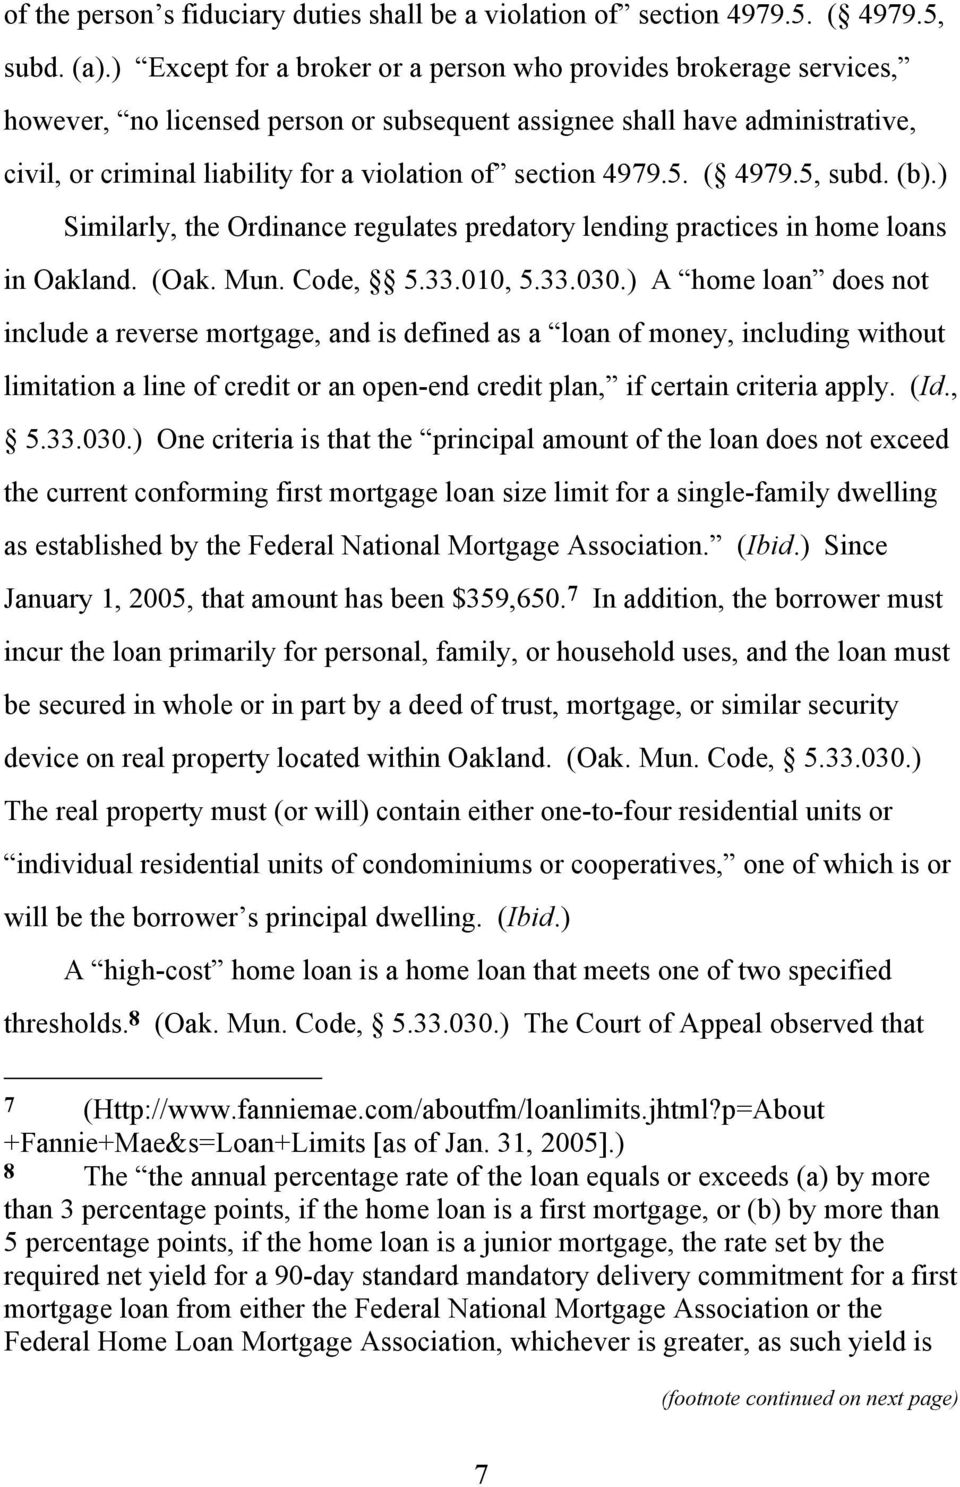 section 4979.5. ( 4979.5, subd. (b).) Similarly, the Ordinance regulates predatory lending practices in home loans in Oakland. (Oak. Mun. Code, 5.33.010, 5.33.030.